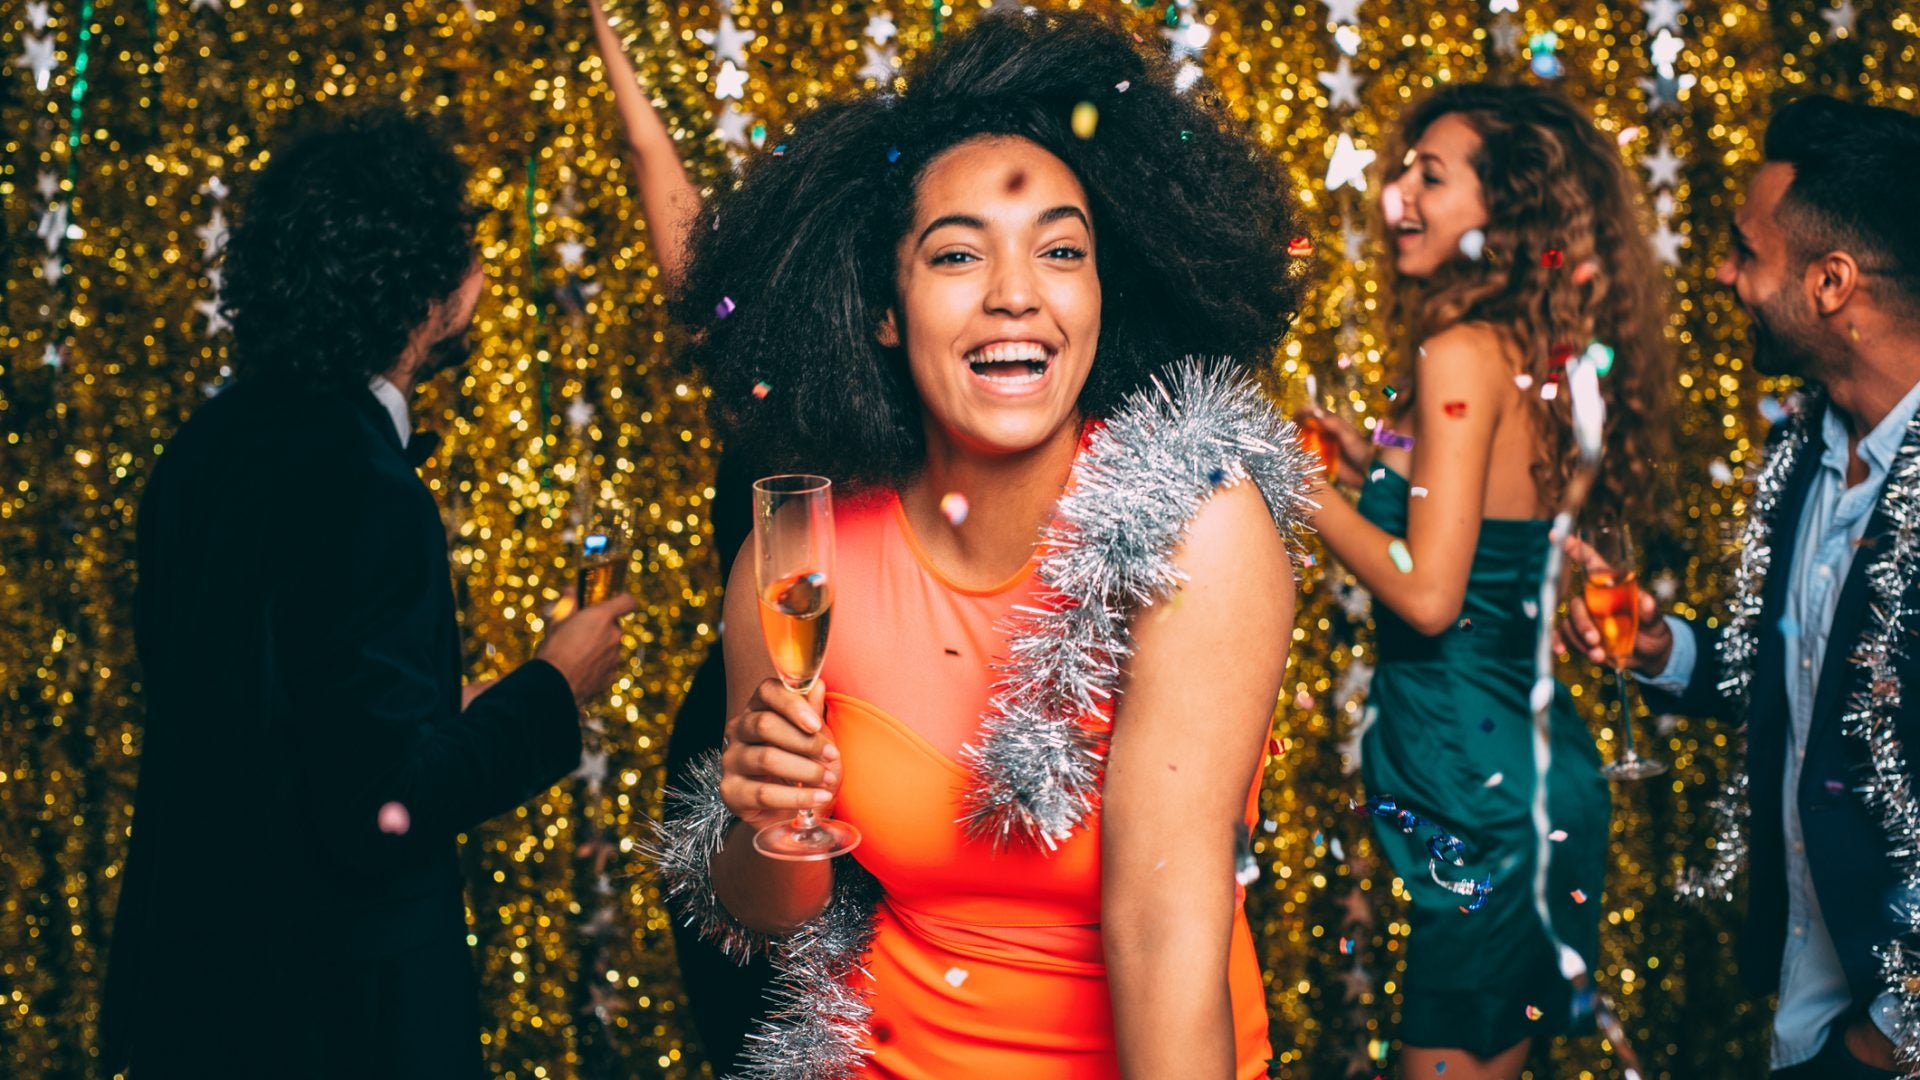 10 Last Minute Ideas To Spend New Year's Eve In NYC That Are Not Times Square